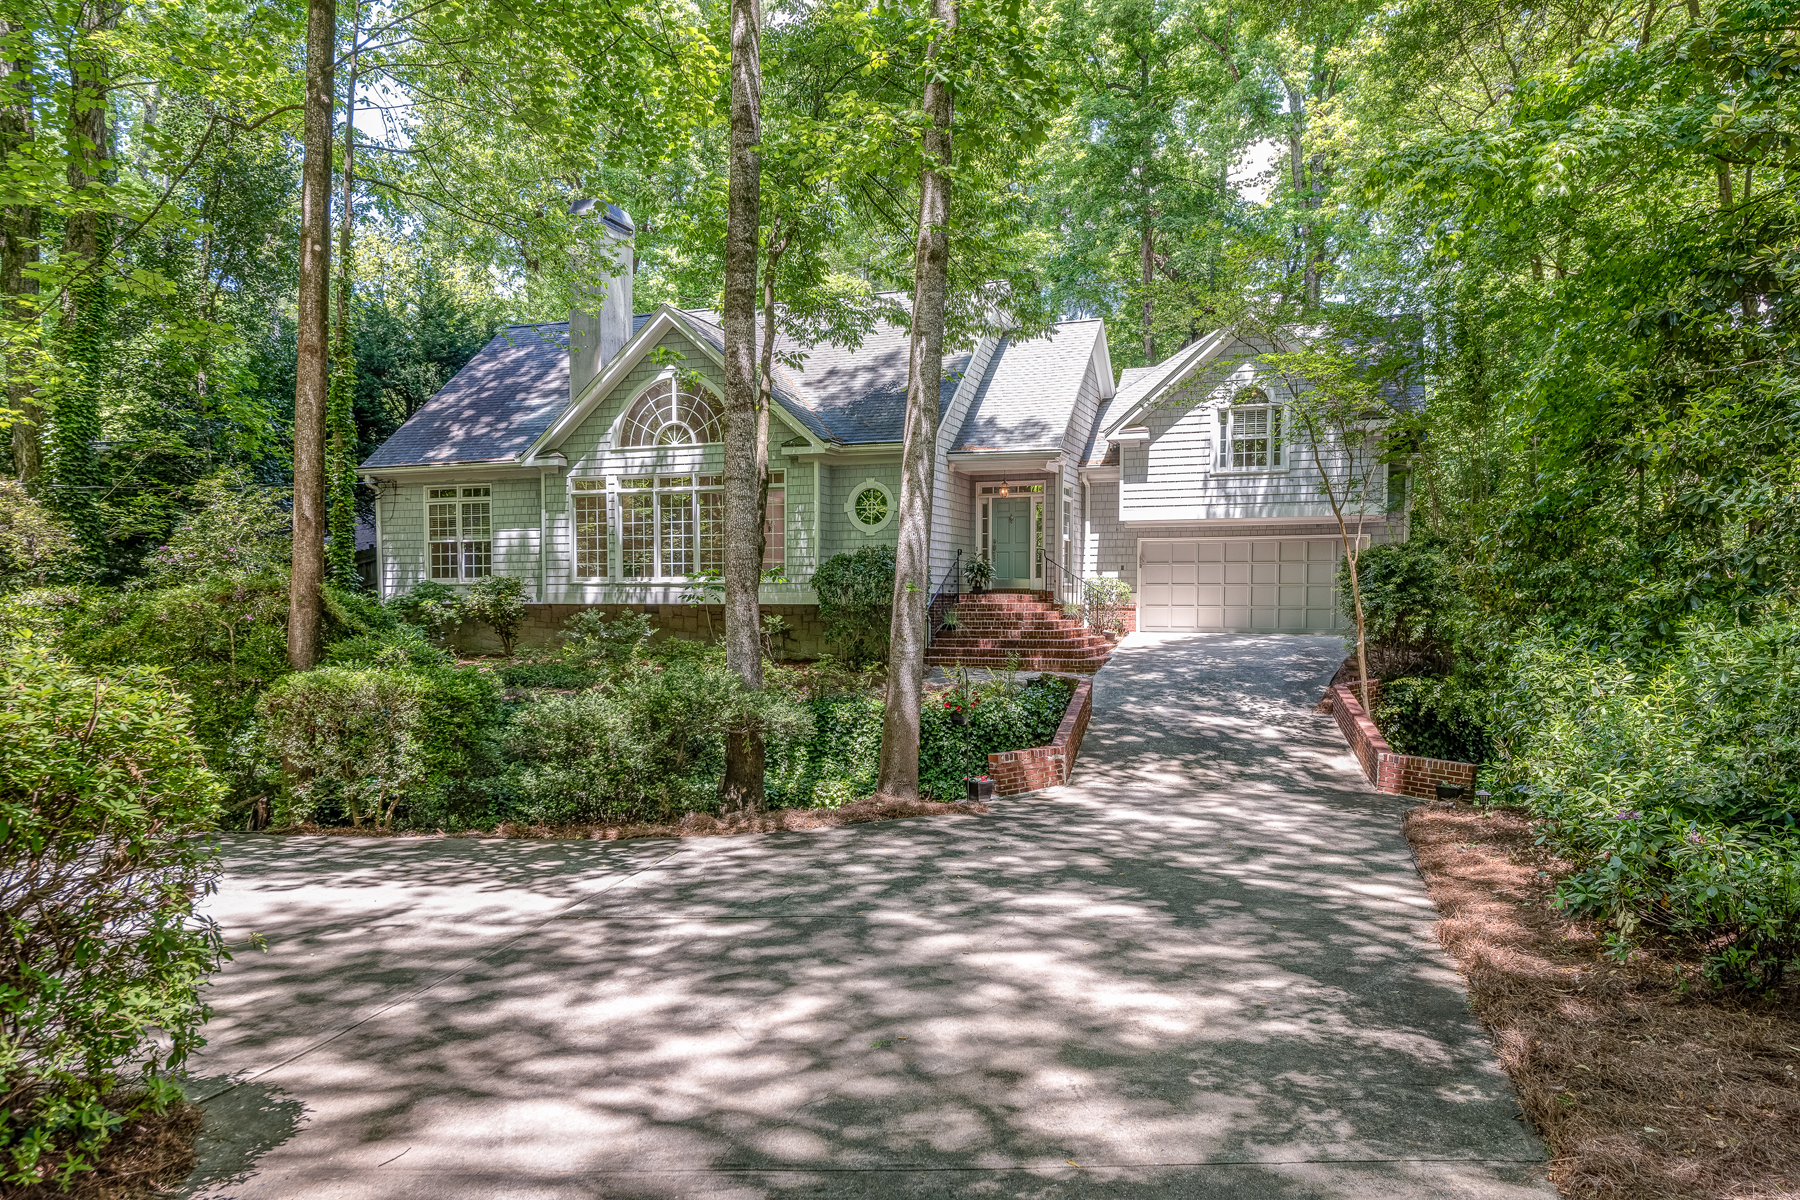 Single Family Home for Sale at Premier Pine Hills Location! Open Floor Plan With Abundant Walls Of Windows 1134 Ferncliff Road Atlanta, Georgia 30324 United States